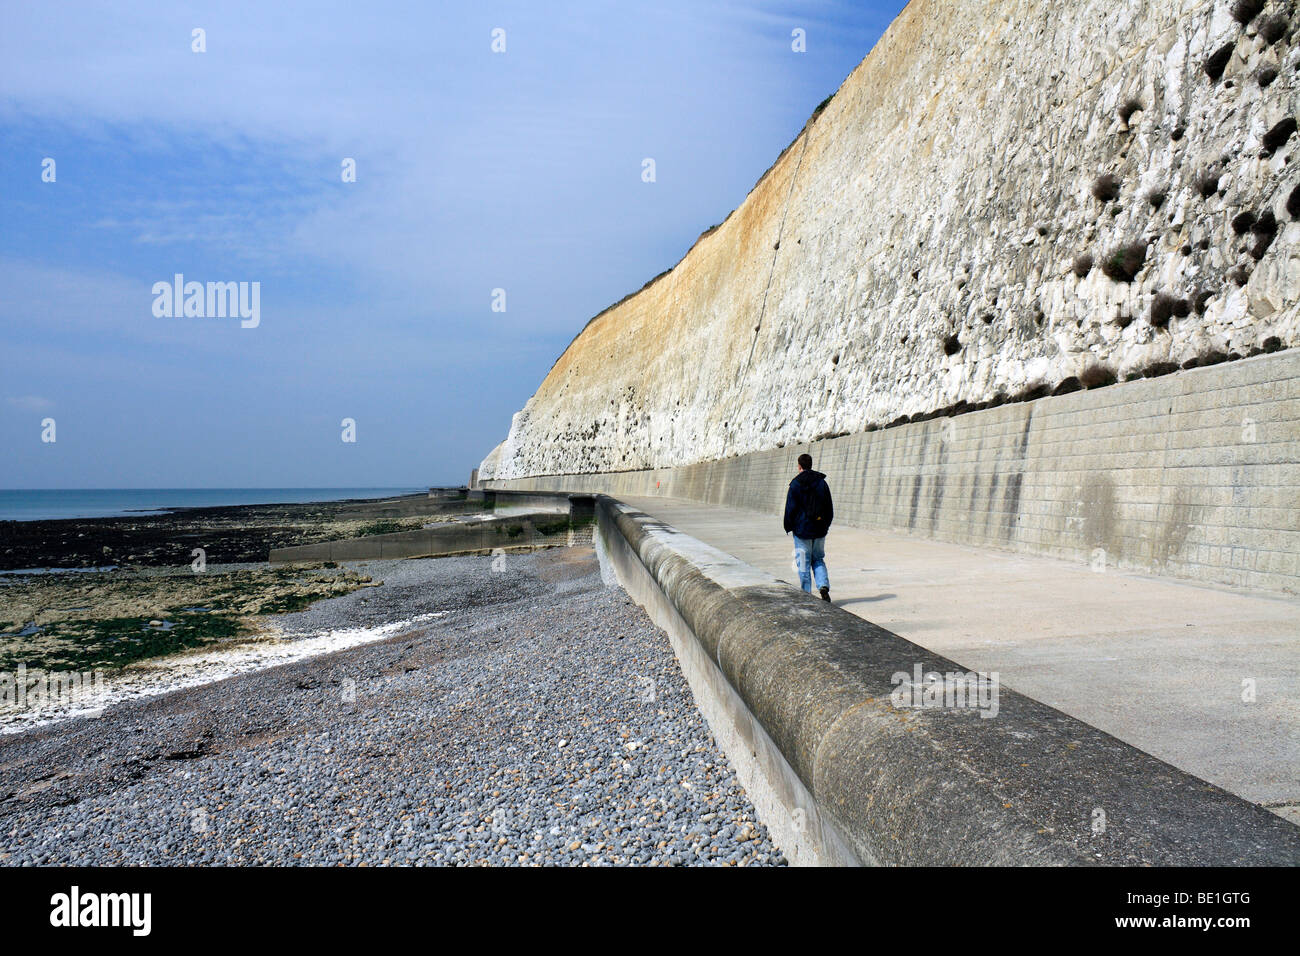 The concrete under cliff walk beneath the chalk cliffs at Peacehaven, East Sussex, England, UK - Stock Image